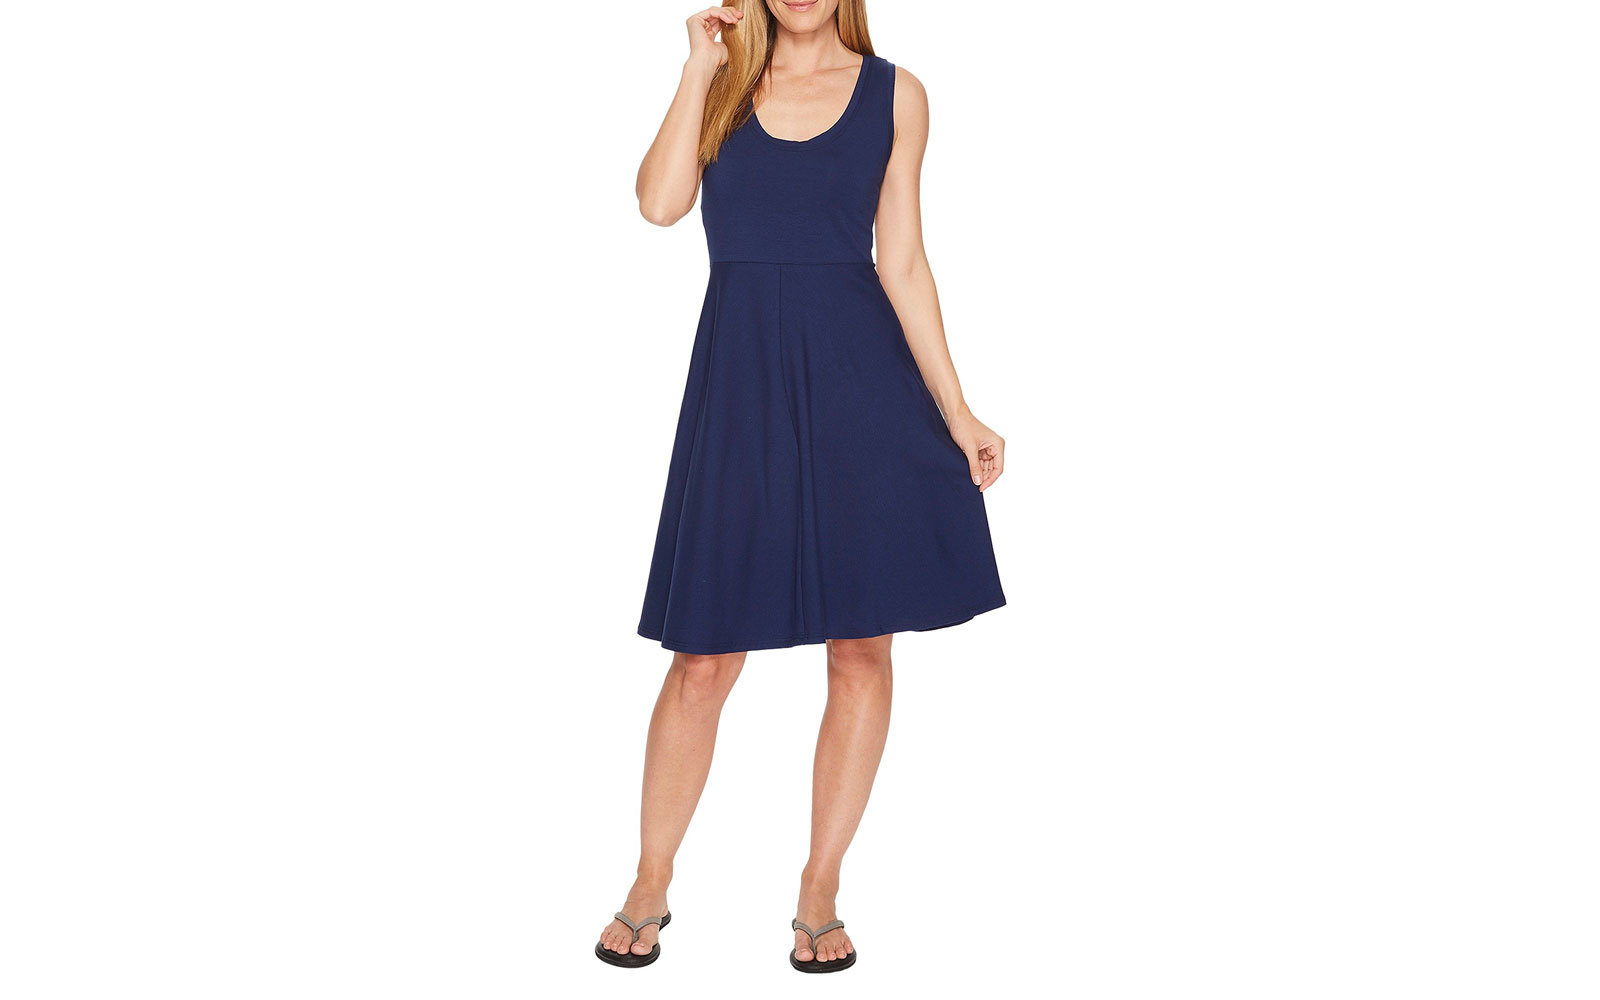 574e7be8a24f 11 Wrinkle-resistant Dresses for Travel